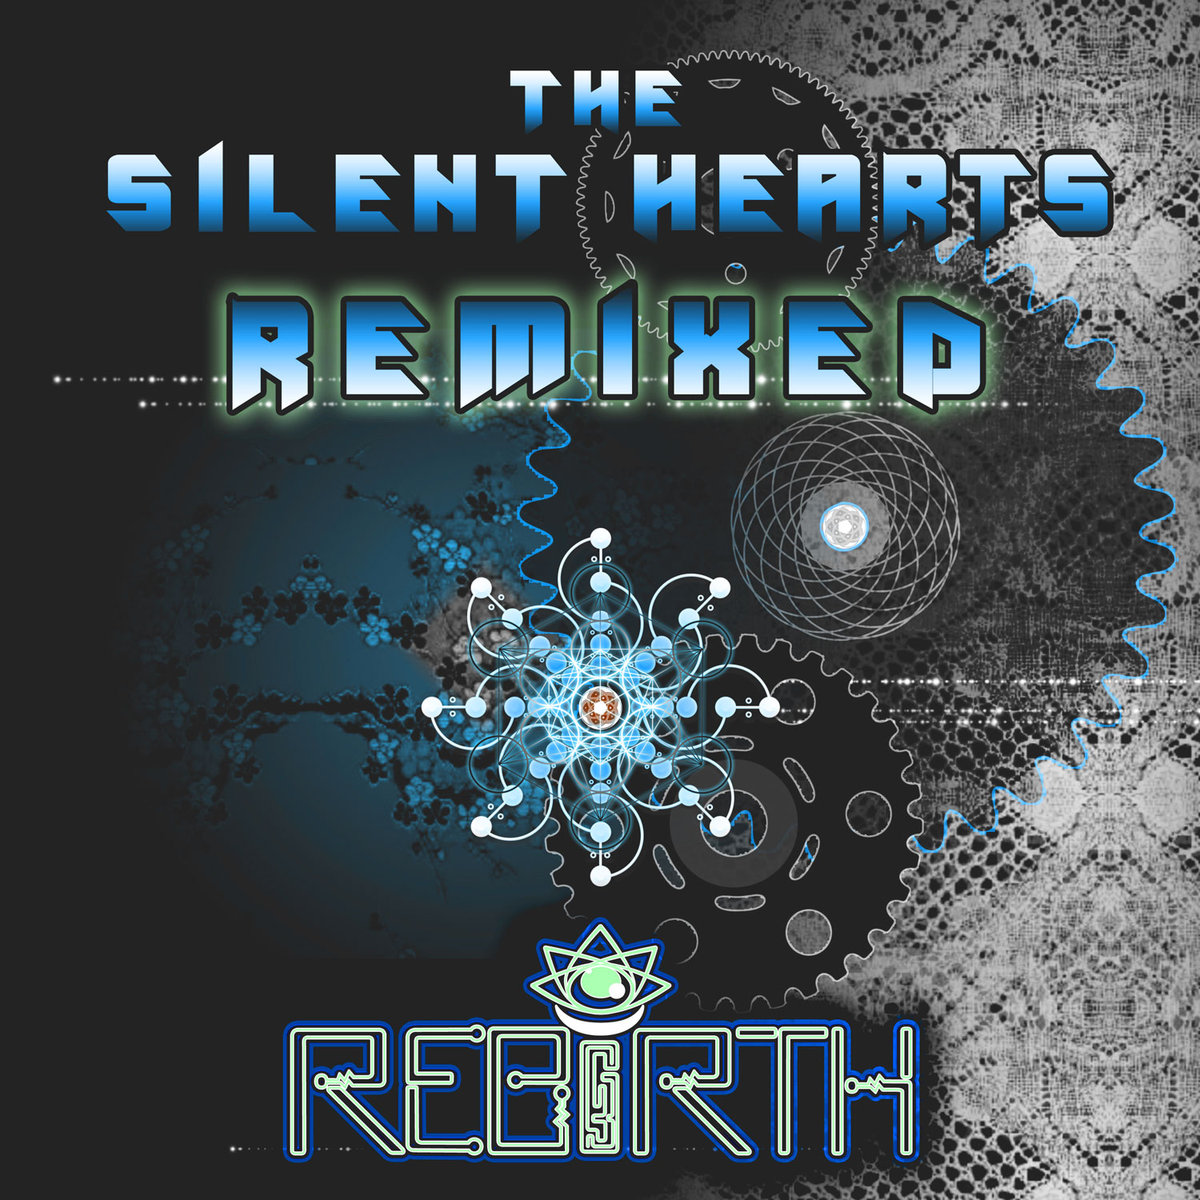 Rebirth - Soulaby (Megowan Remix) @ 'The Silent Hearts: Remixed' album (bass, electronic)